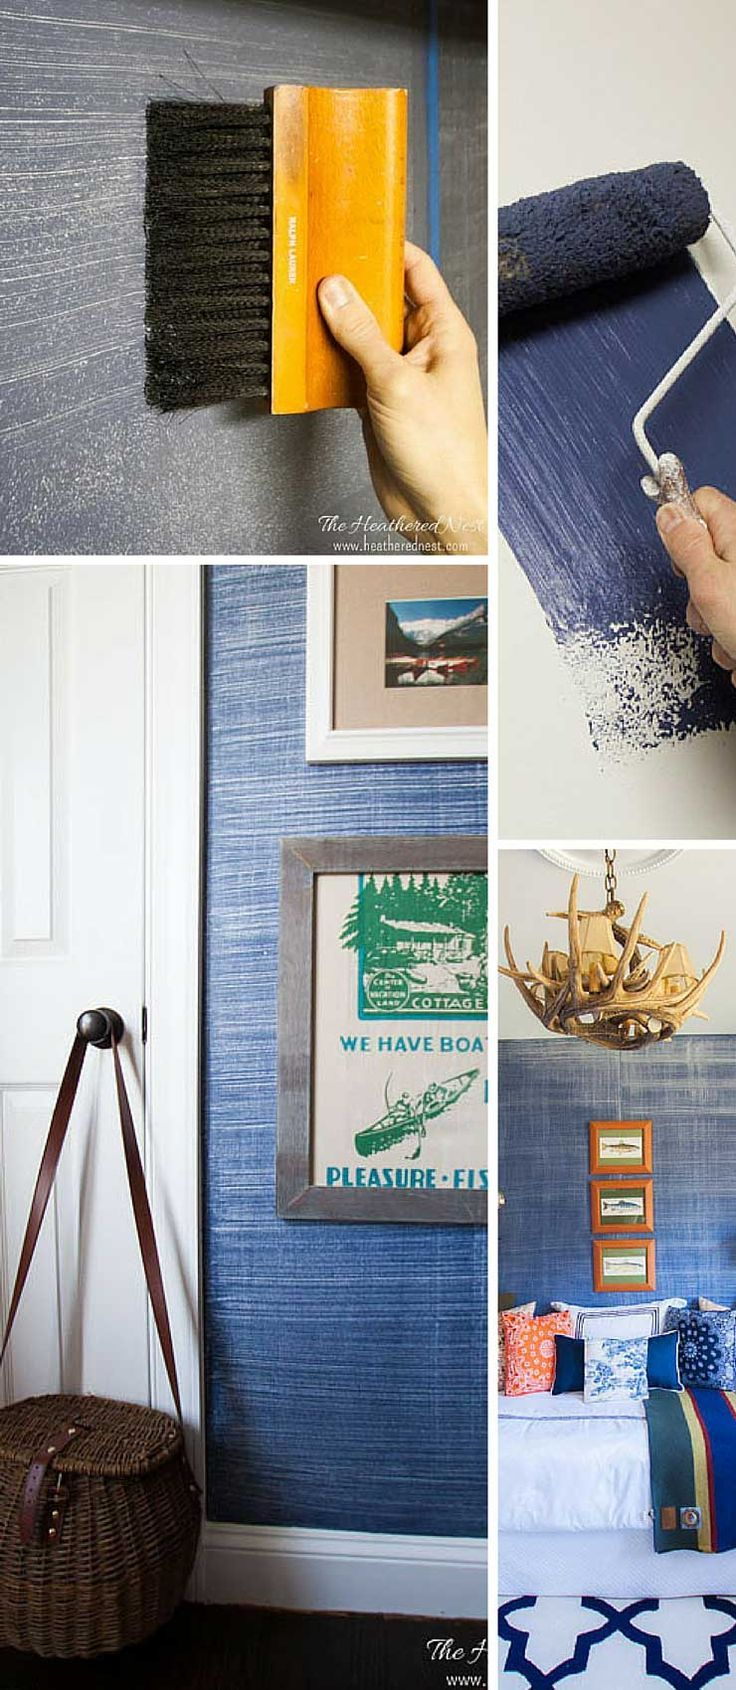 Best Ideas About Textured Painted Walls On Pinterest Faux - Diy bedroom painting ideas